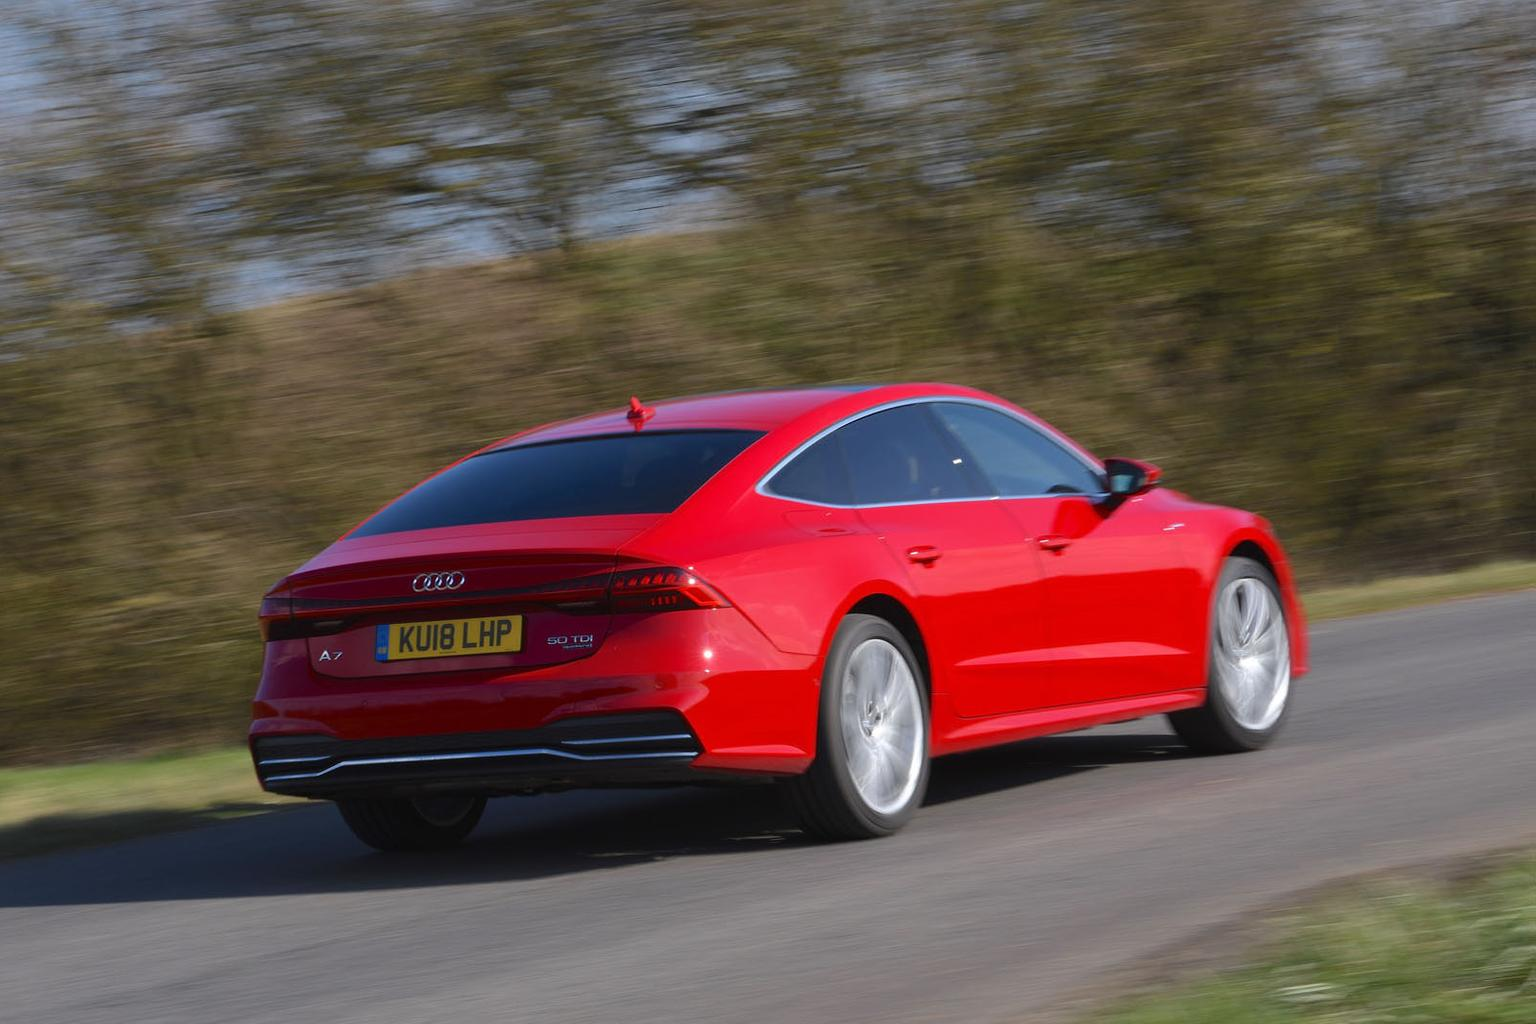 New Audi A7 Sportback & Mercedes-Benz CLS vs BMW 6 Series GT